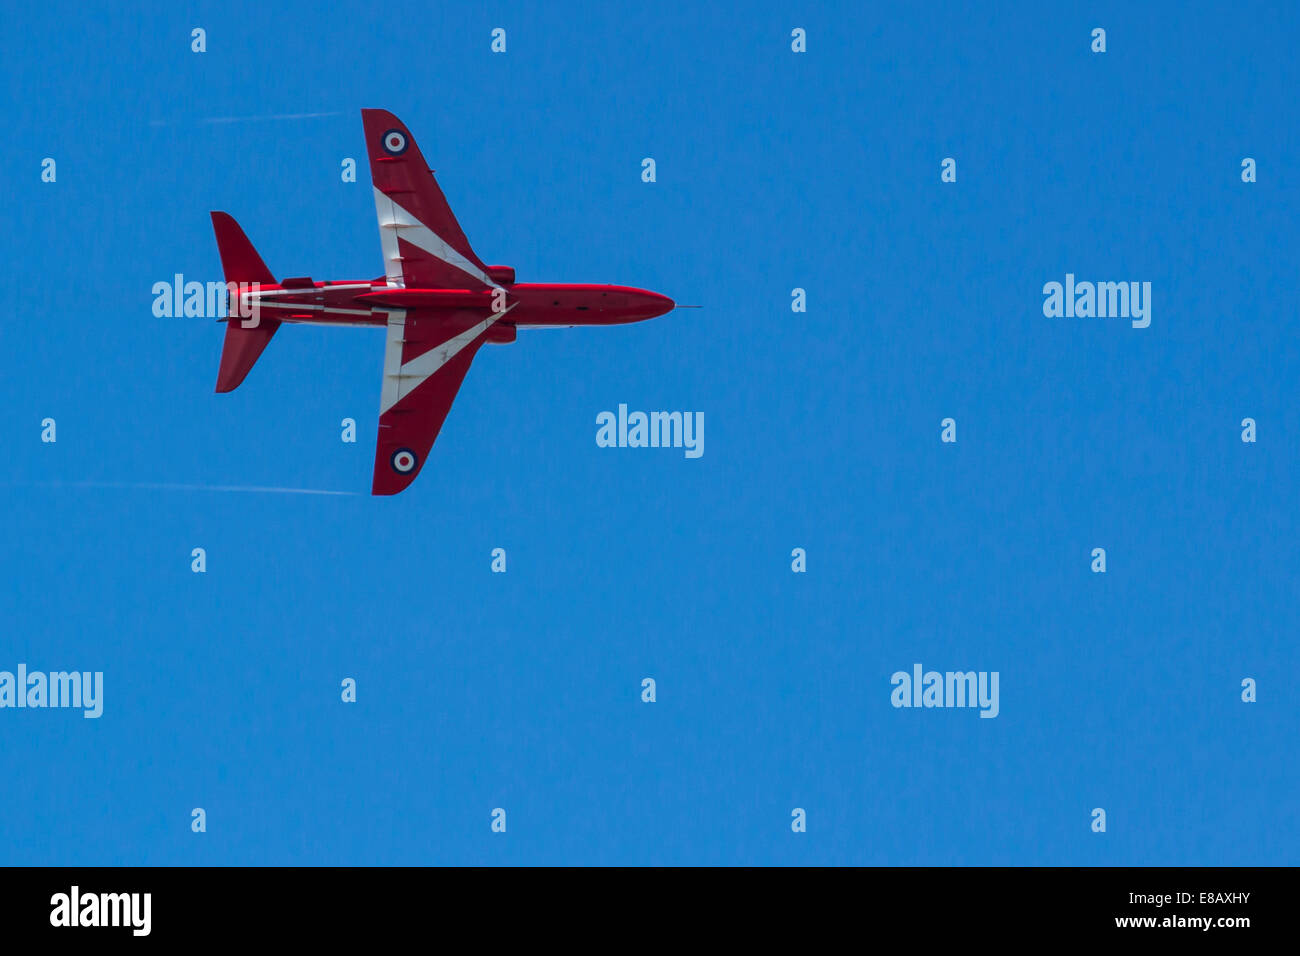 The Red Arrows perform against a clear blue sky at the Bournemouth Air Festival 2014. - Stock Image